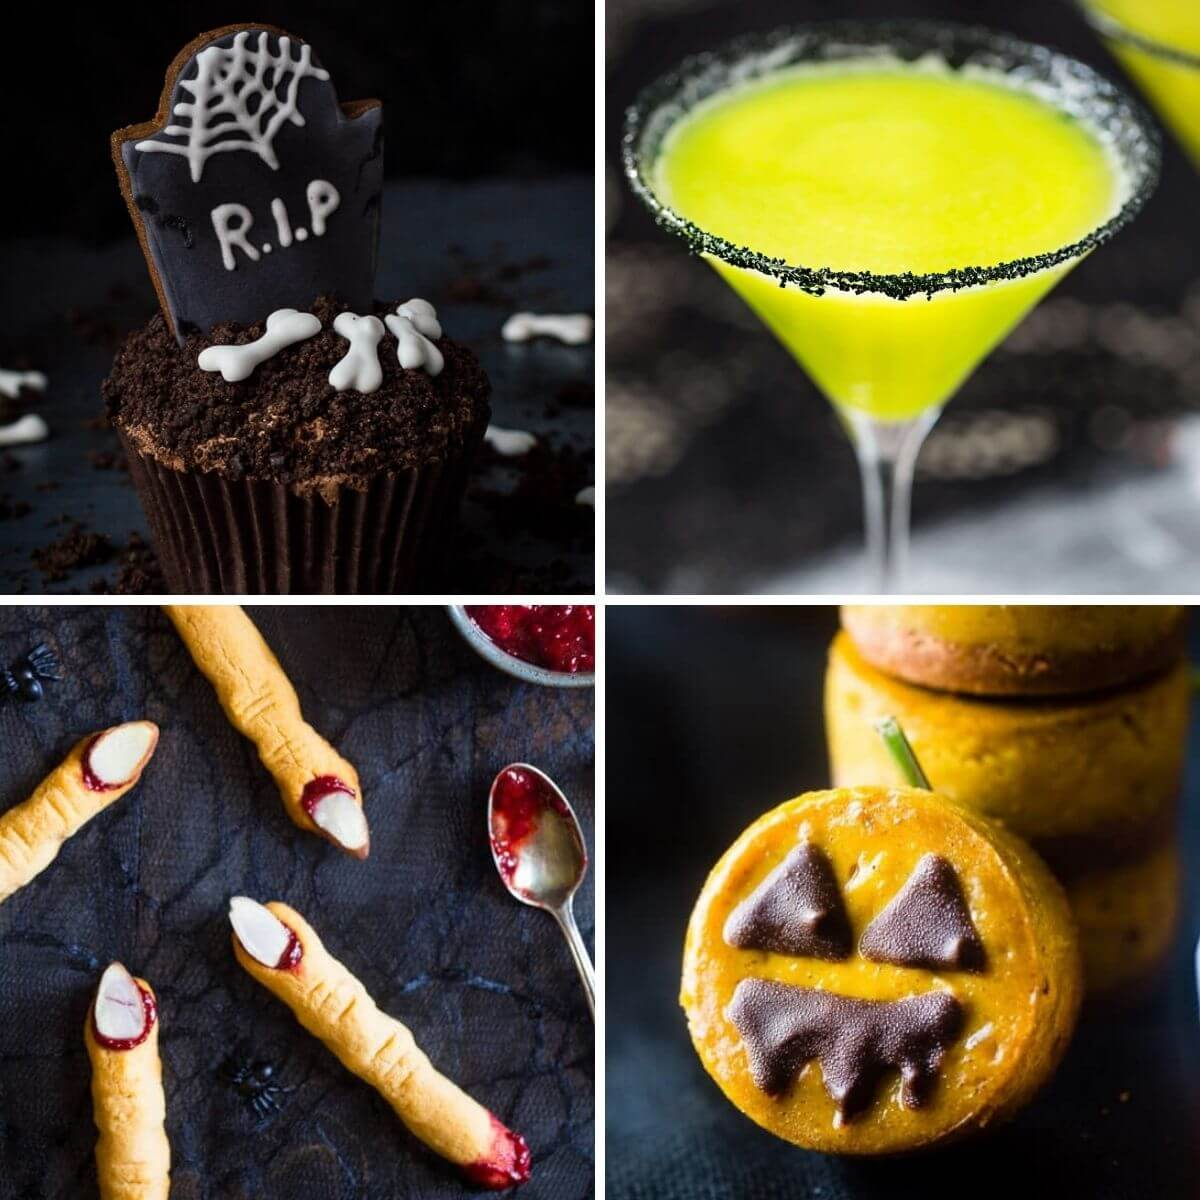 If you're planning any kind of party, decorations are one of the first things to consider. 46 Spooky Vegan Halloween Recipes Treats Snacks Drinks The Green Loot